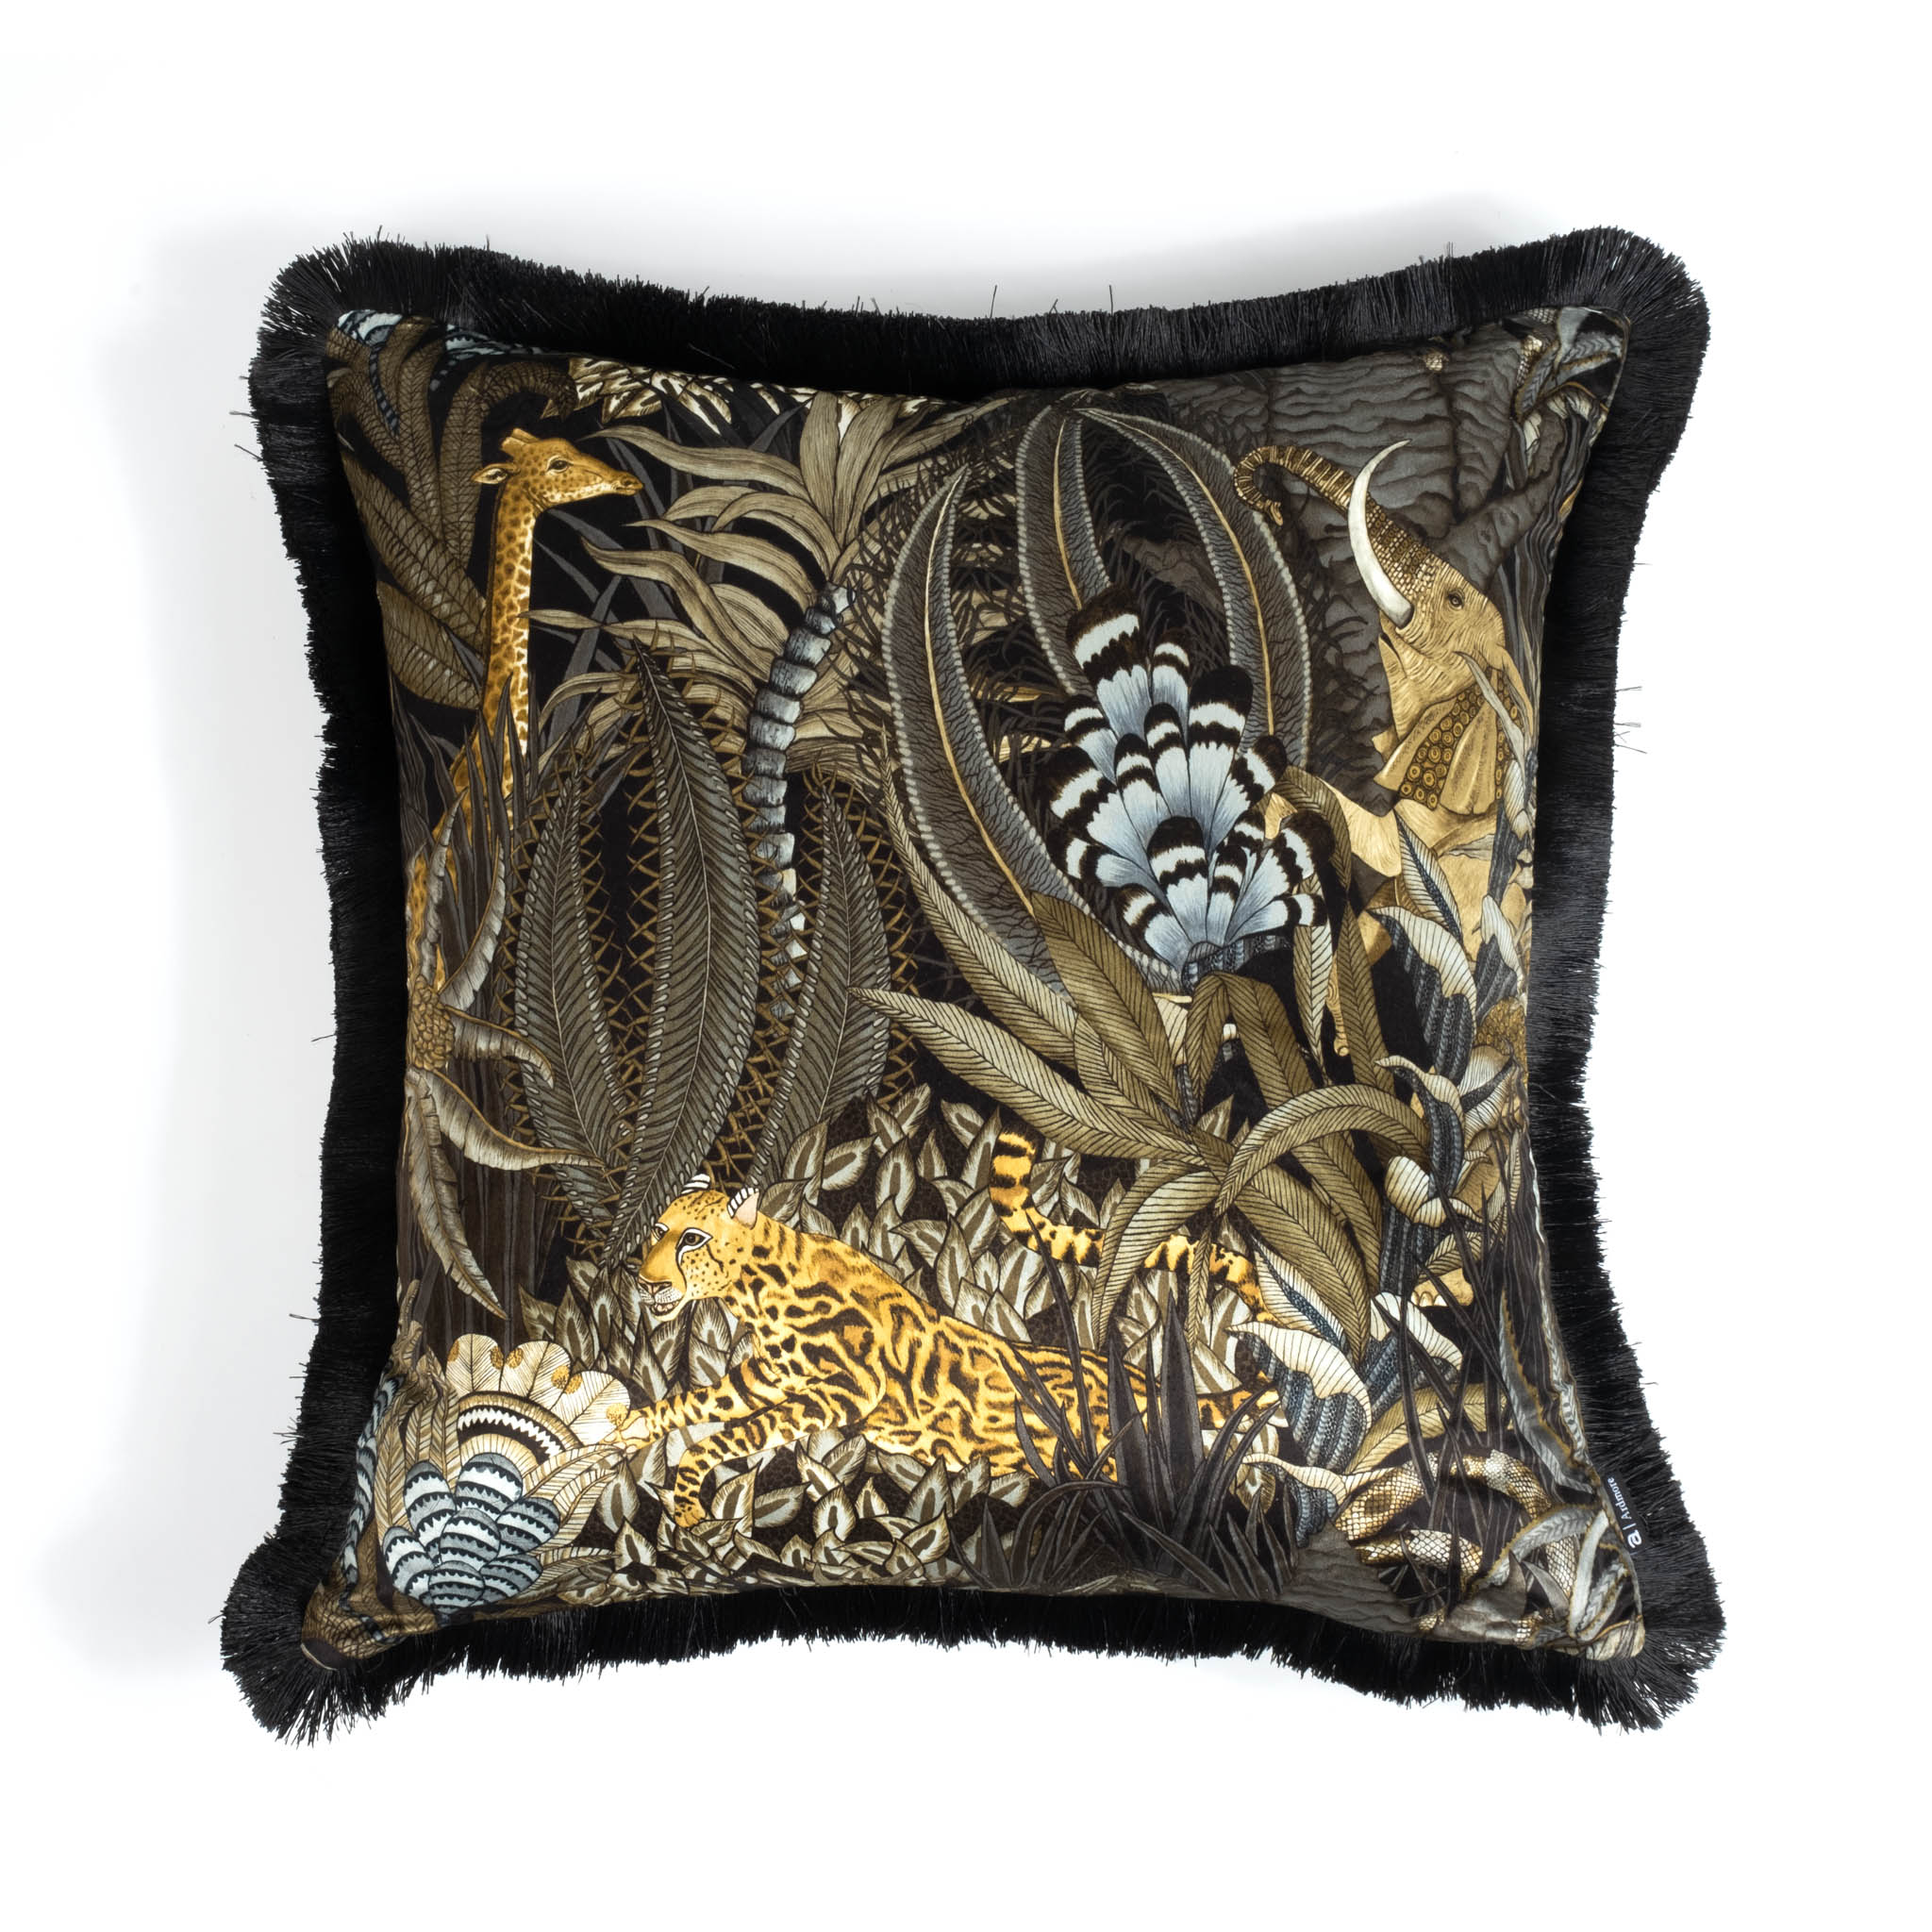 Sabie Forest Pillow - Velvet w/ Fringe - Moonlight